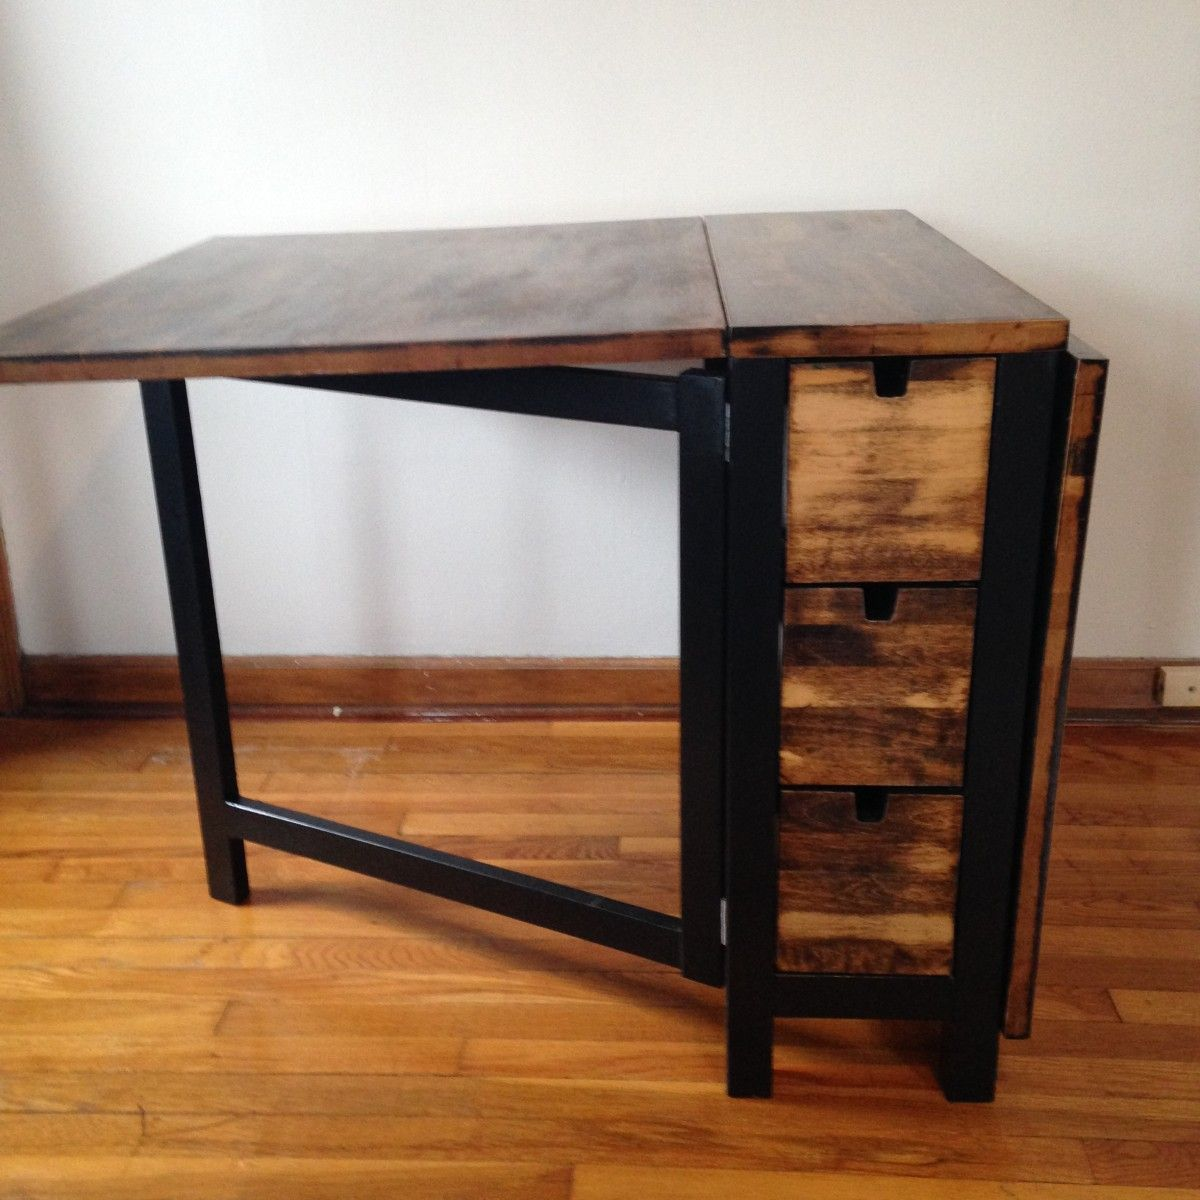 Best Ikea Table For A Tiny Kitchen Norden Perfect Ikea Dining Table For A Tiny Kitc Space Saving Dining Table Tiny House Furniture Dining Table Small Space